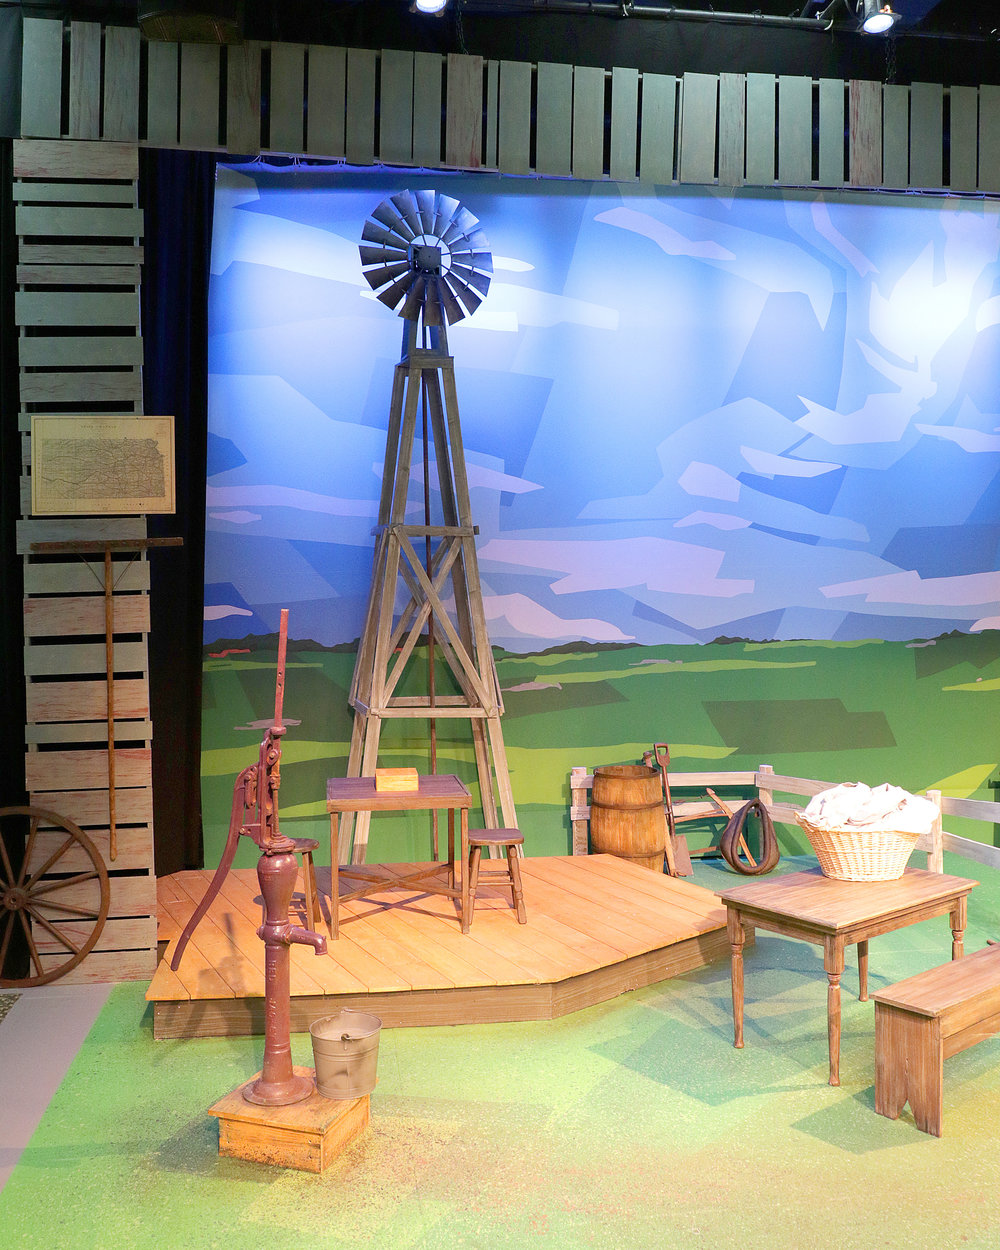 Sarah, Plain and Tall  by Joseph Robinette  Kate Goldman Children's Theater at the Des Moines Playhouse  (Allison McGuire, Director; Kevin Shelby, Scenic Designer; Susanna Douthit, Costume Designer; Virgil  Kleinhesselink, Lighting Designer)